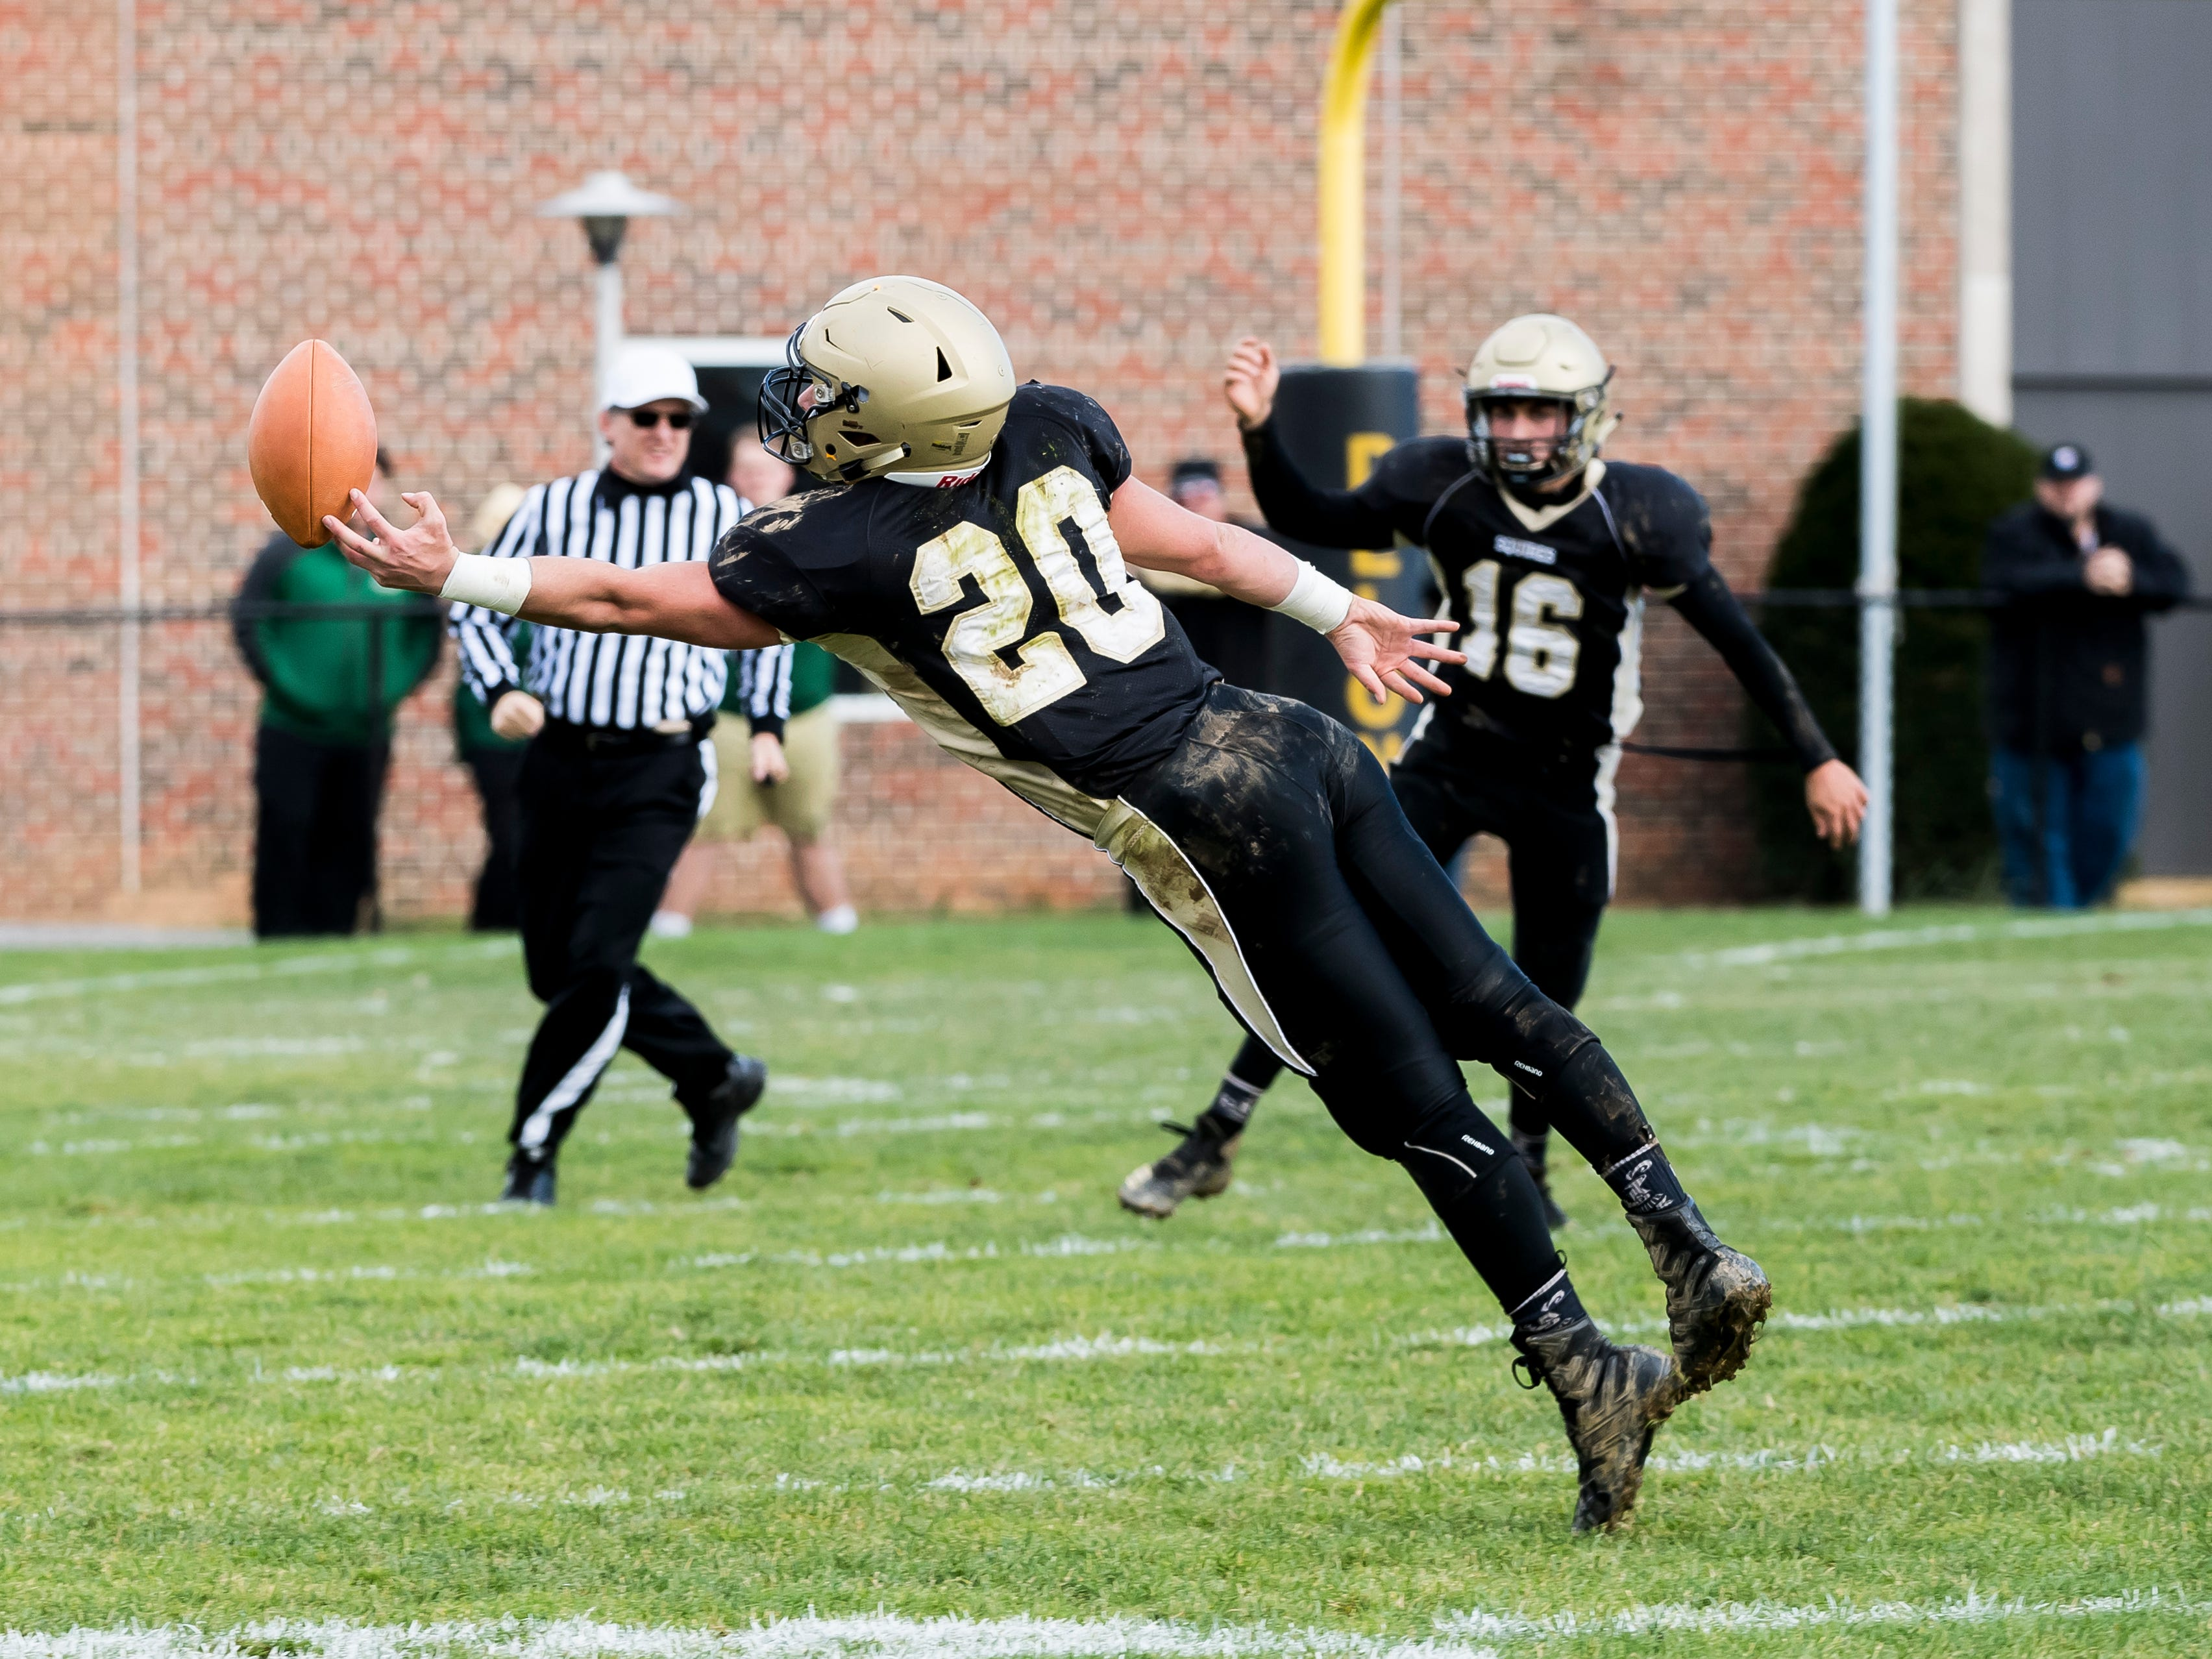 A pass intended for Delone Catholic's Tyler Monto is just out of reach during a District III Class 2A semifinal game against Upper Dauphin on Saturday, November 3, 2018. The Squires won 48-23.